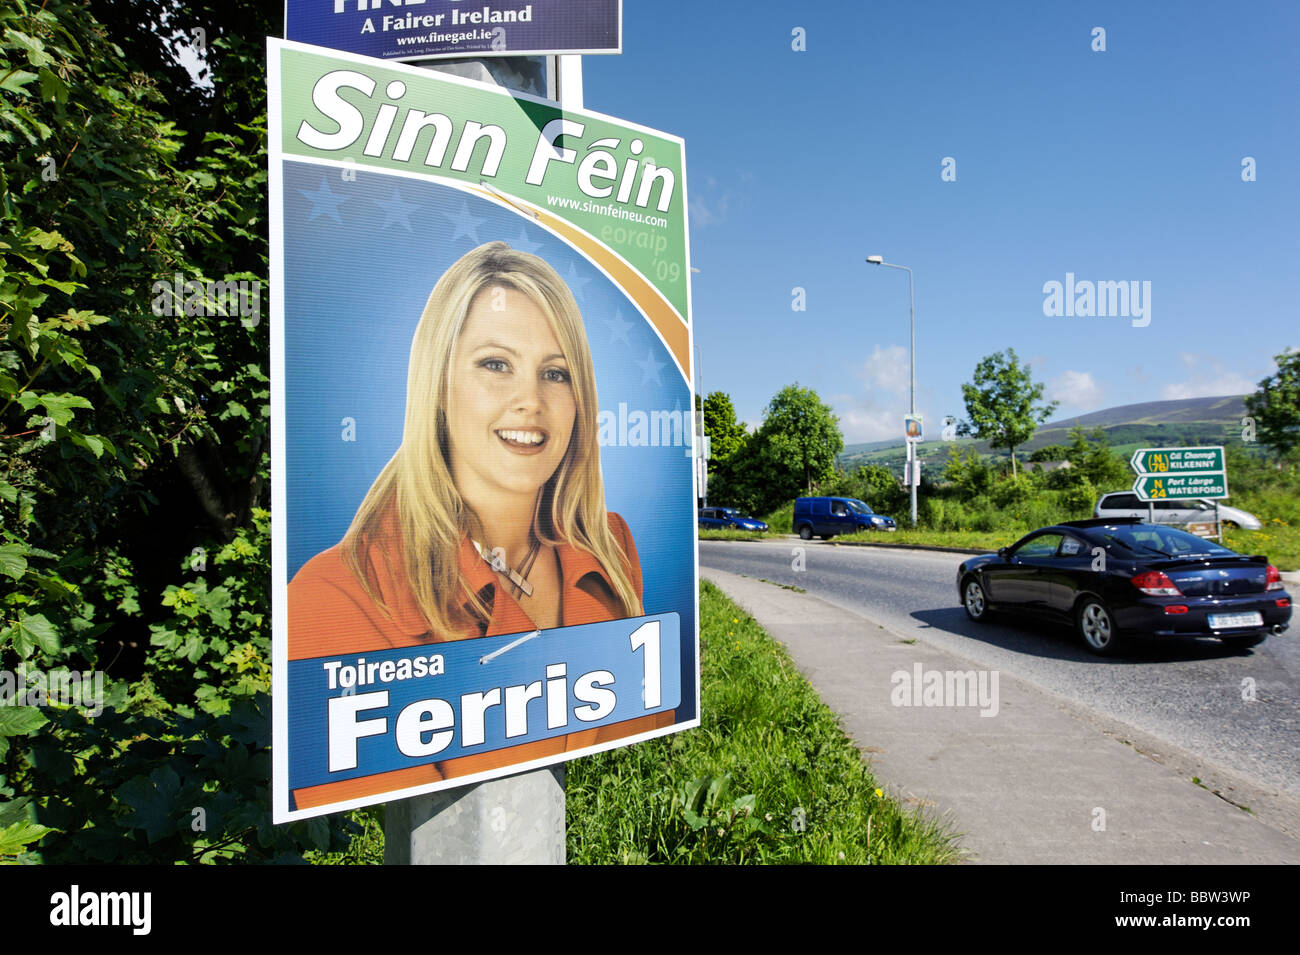 Sinn Fein local election political party poster by the roadside in County Tipperary Republic of Ireland 2009 - Stock Image